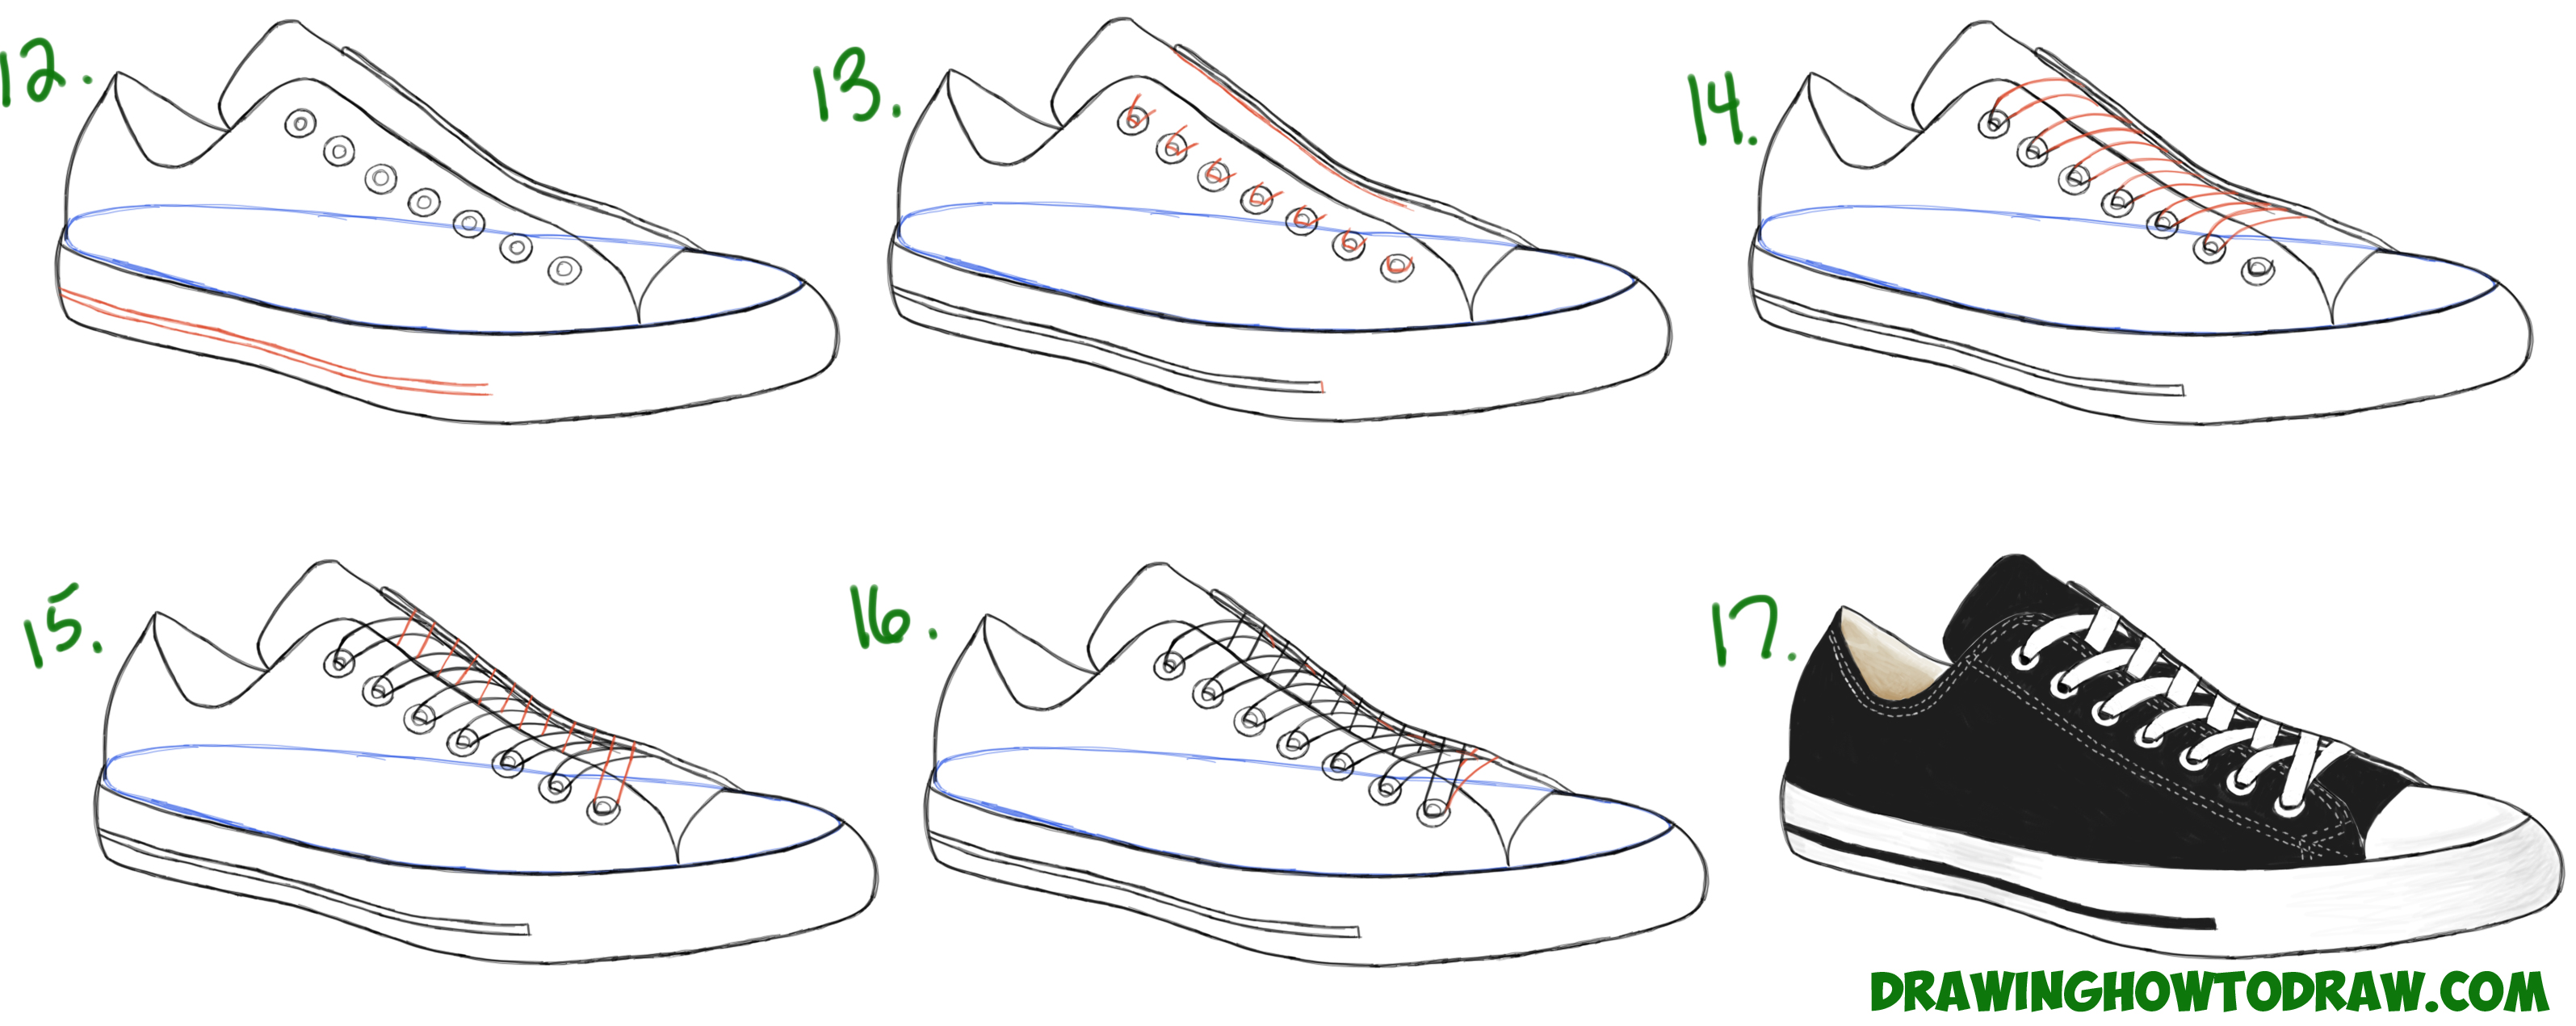 Learn How to Draw Sneakers / Shoes (Converse / Keds) with Simple Steps Drawing Lesson for Beginners